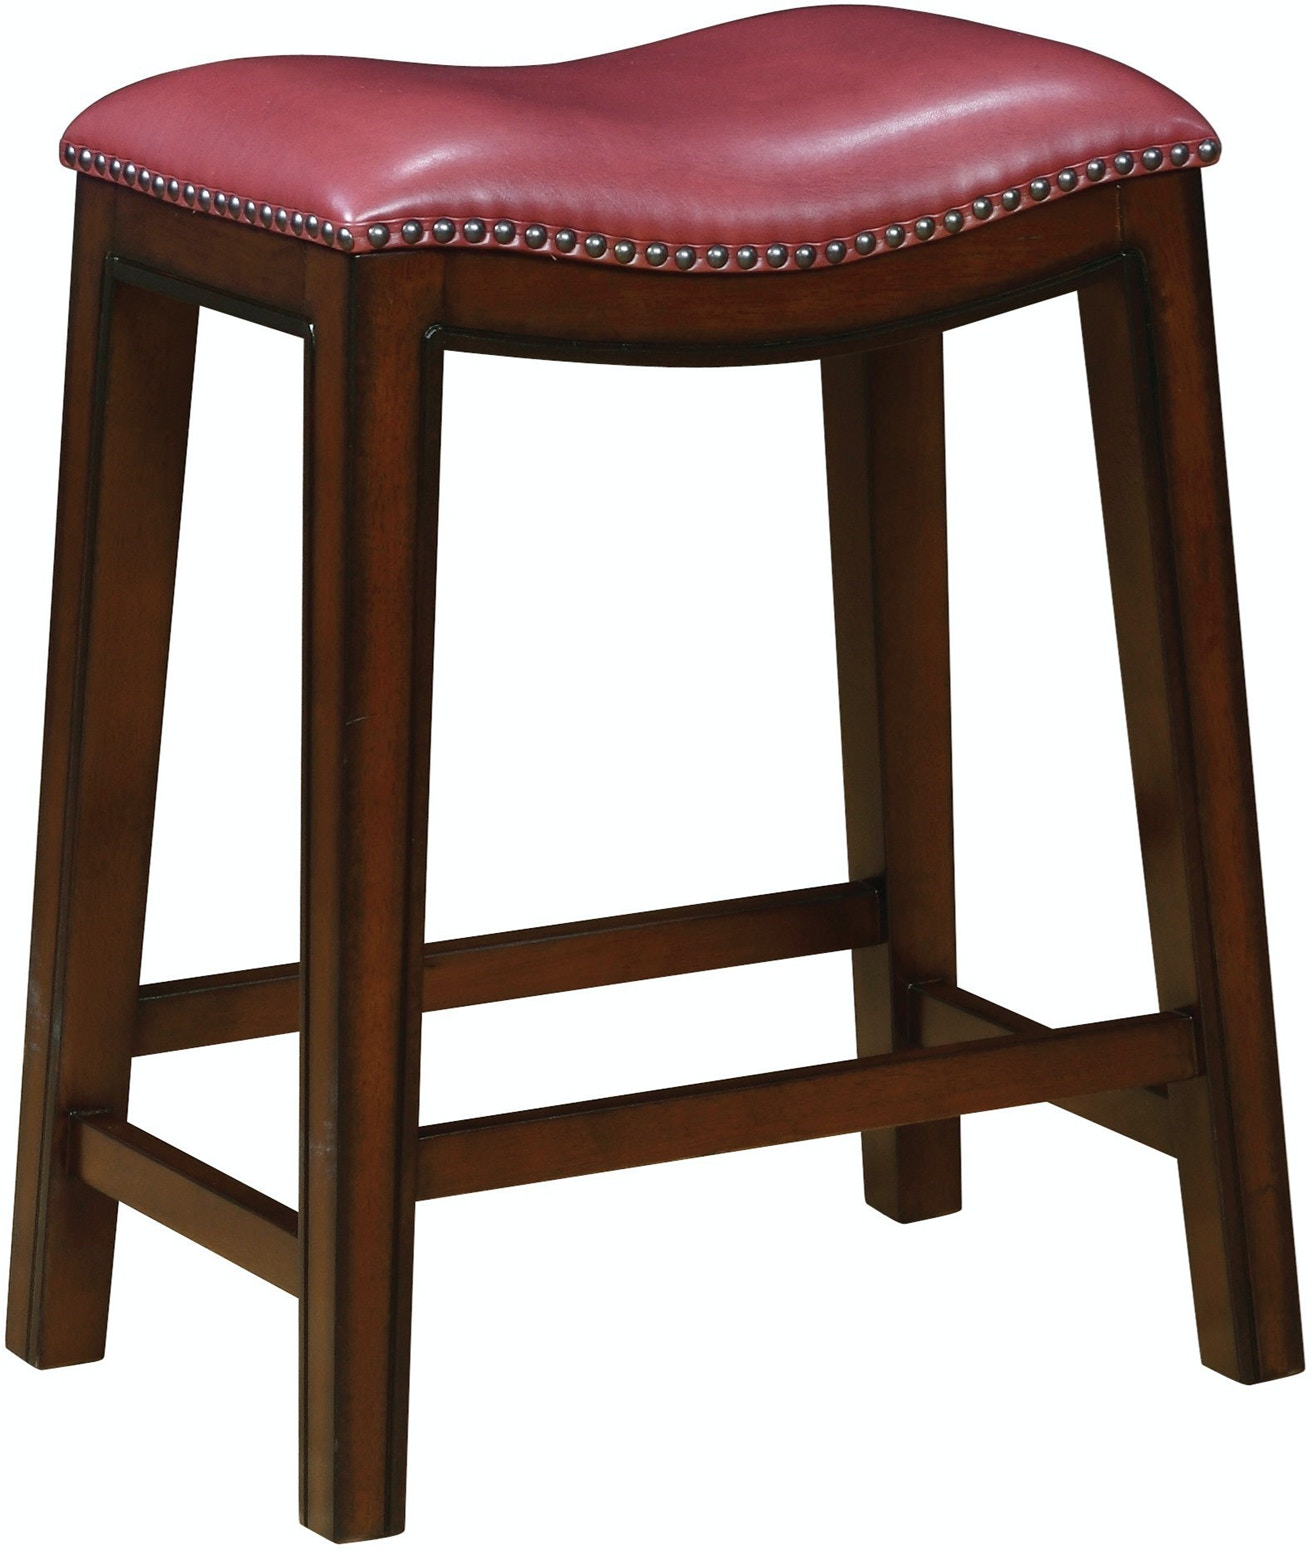 Coaster co of america bar and game room crispin counter for Coaster furniture of america